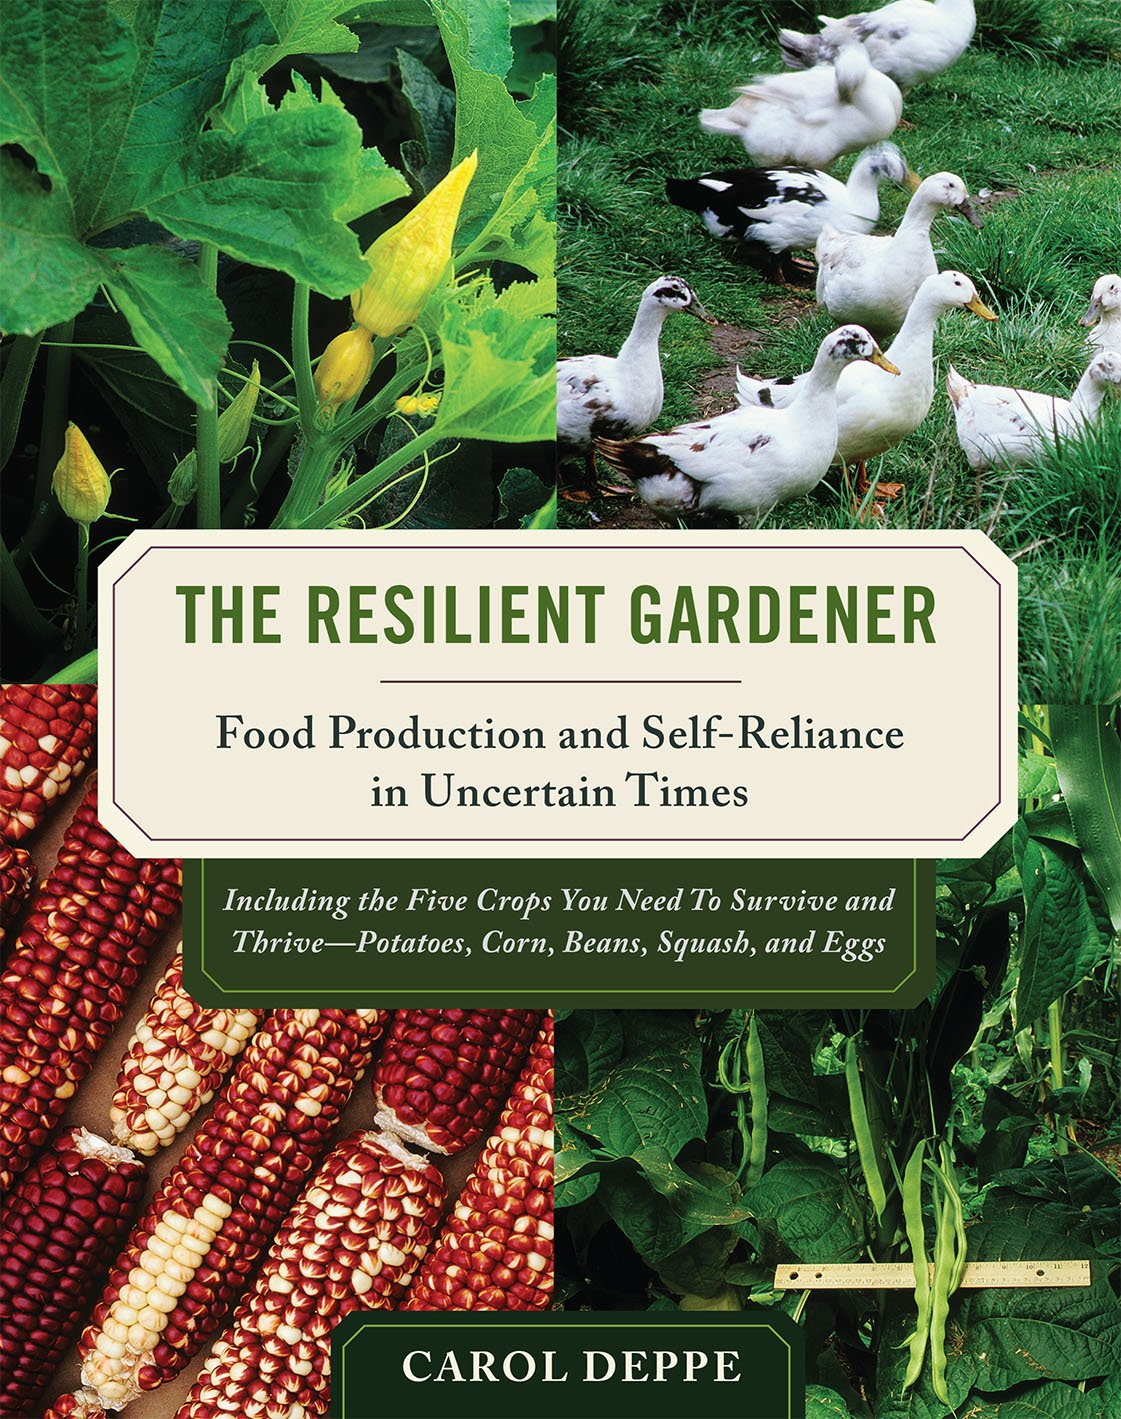 The Resilient Gardener: Food Production and Self-Reliance in Uncertain Times